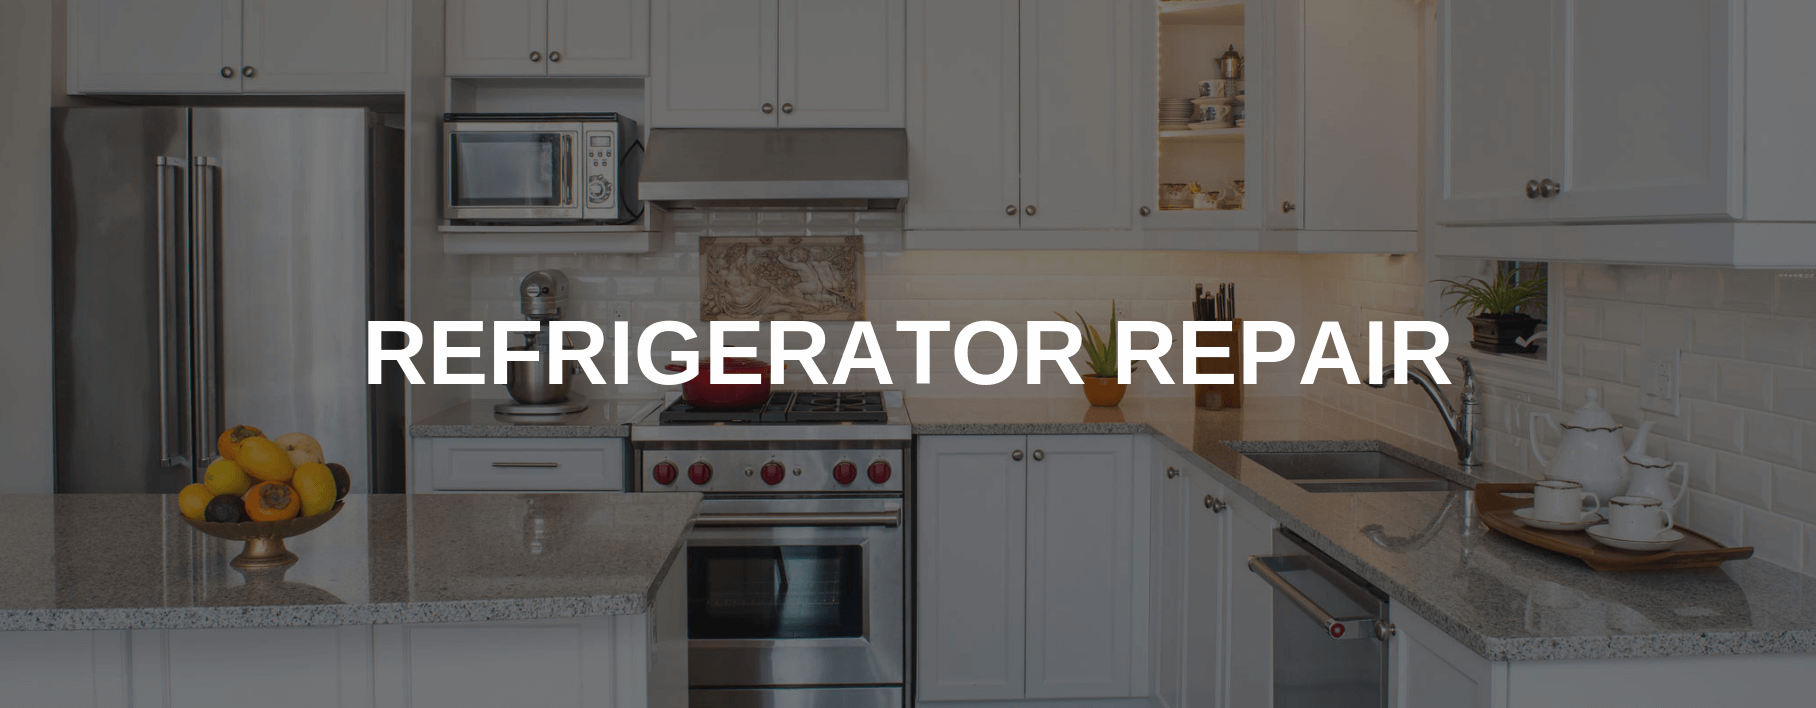 denton refrigerator repair